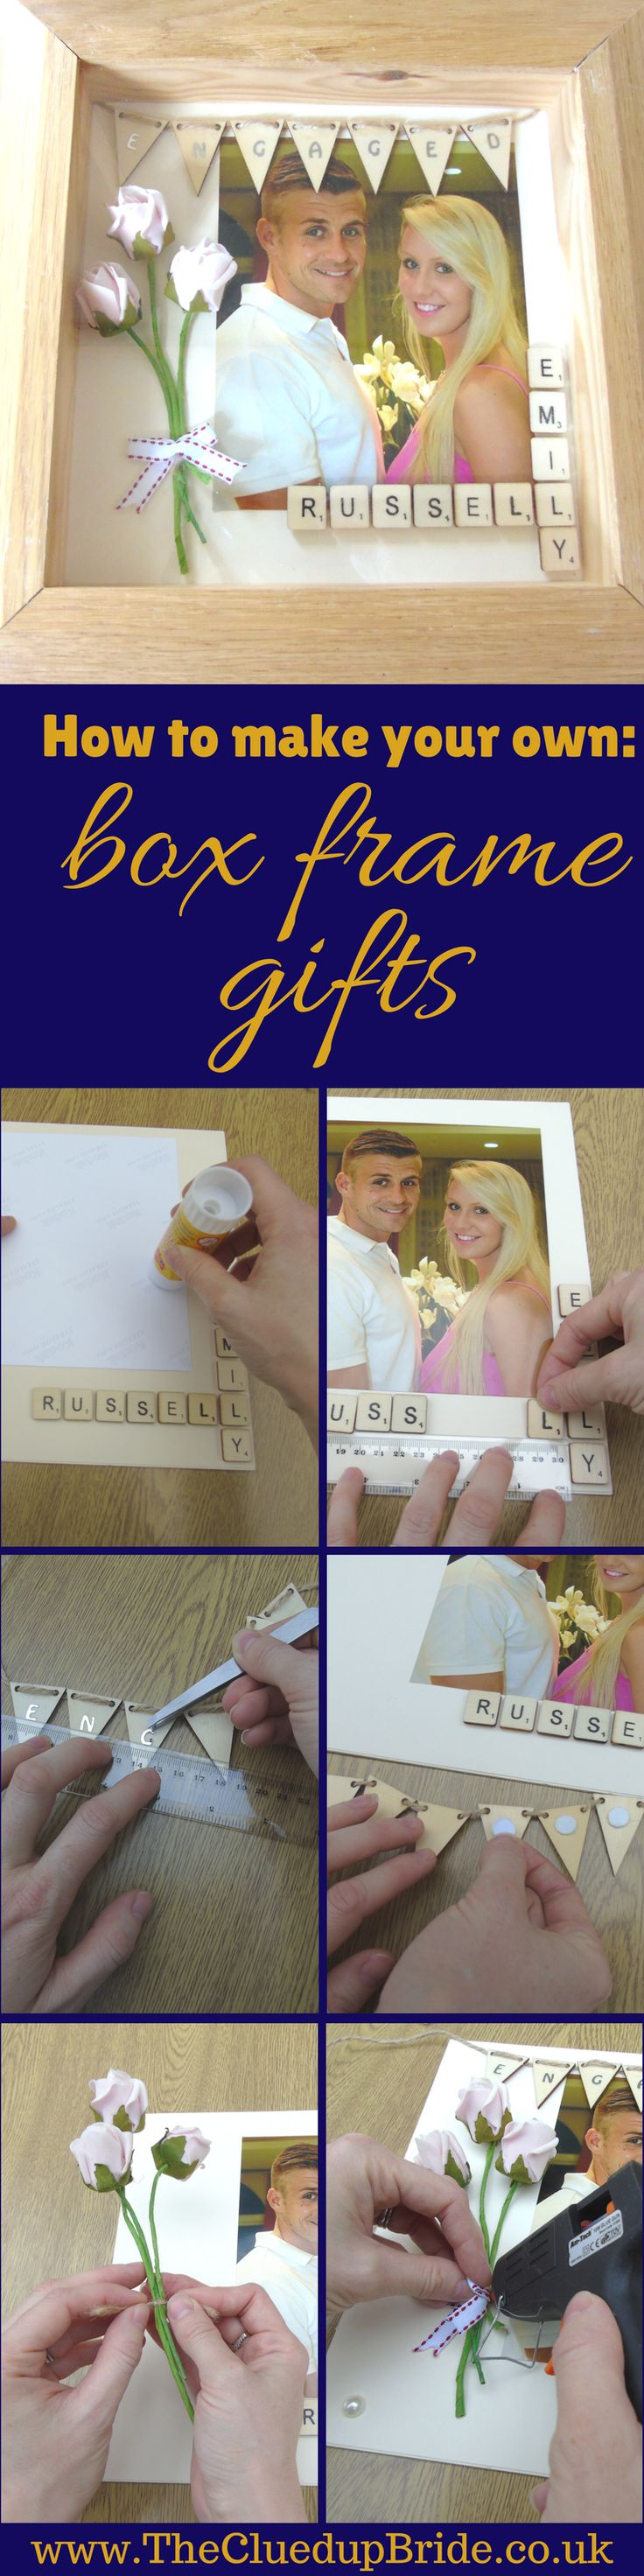 Wedding DIY Ideas: How to make your own box frame gift – Projects to Try